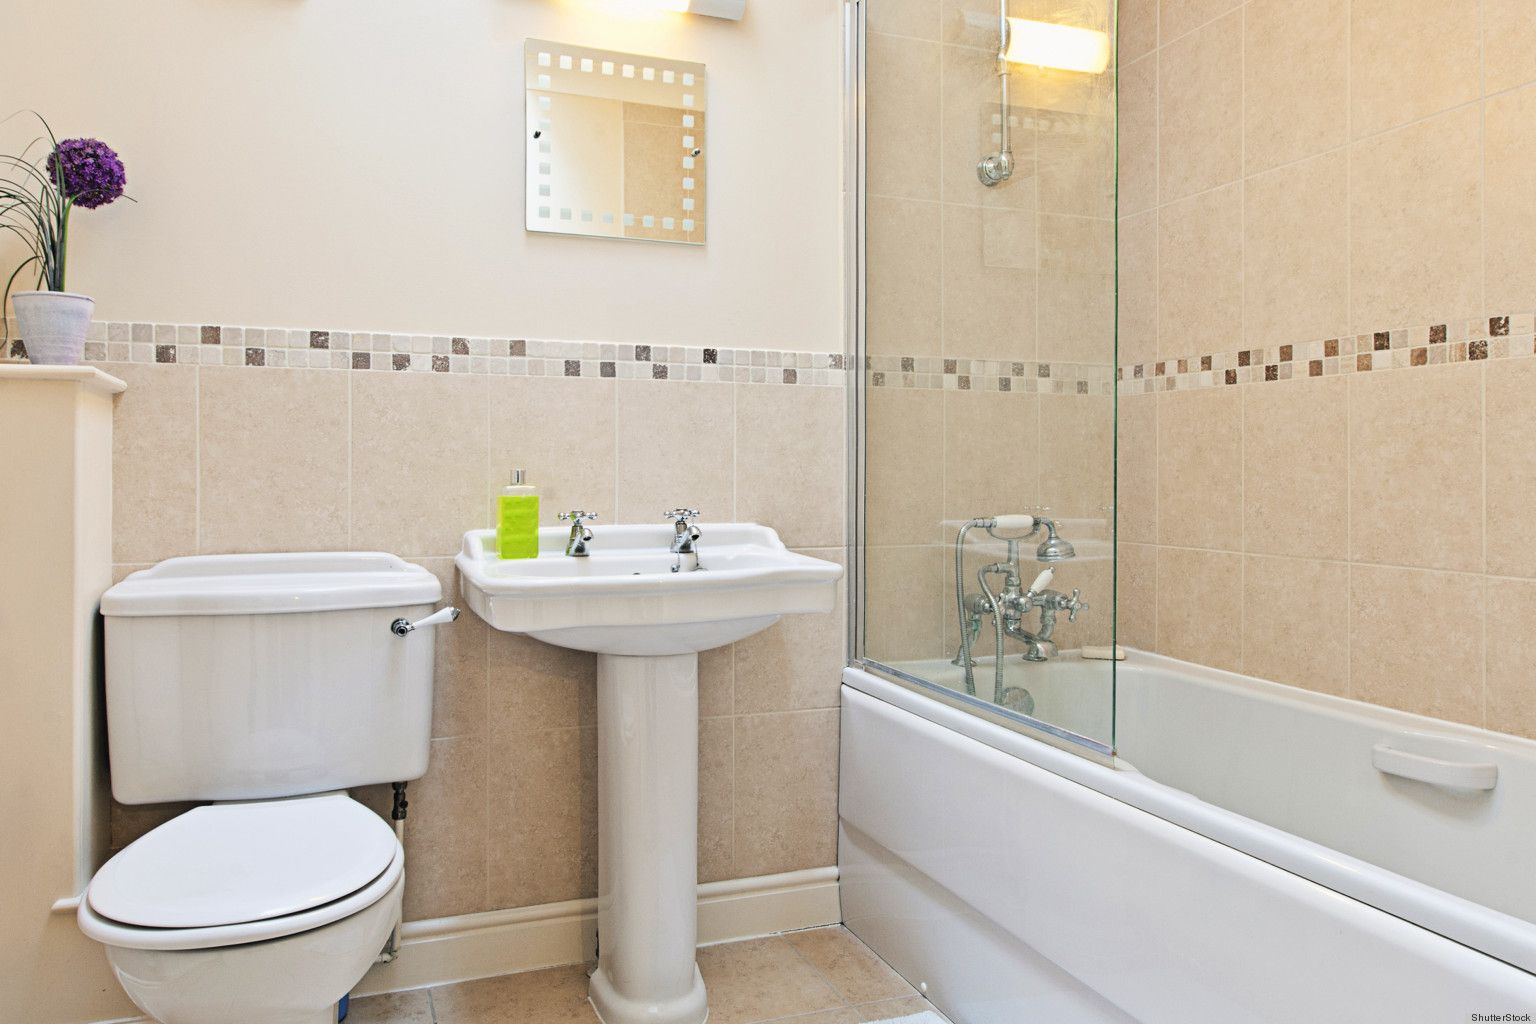 The Best Ways To Spring Clean Your Bathroom  Cleaning Best Best Way To Clean Bathroom Design Ideas